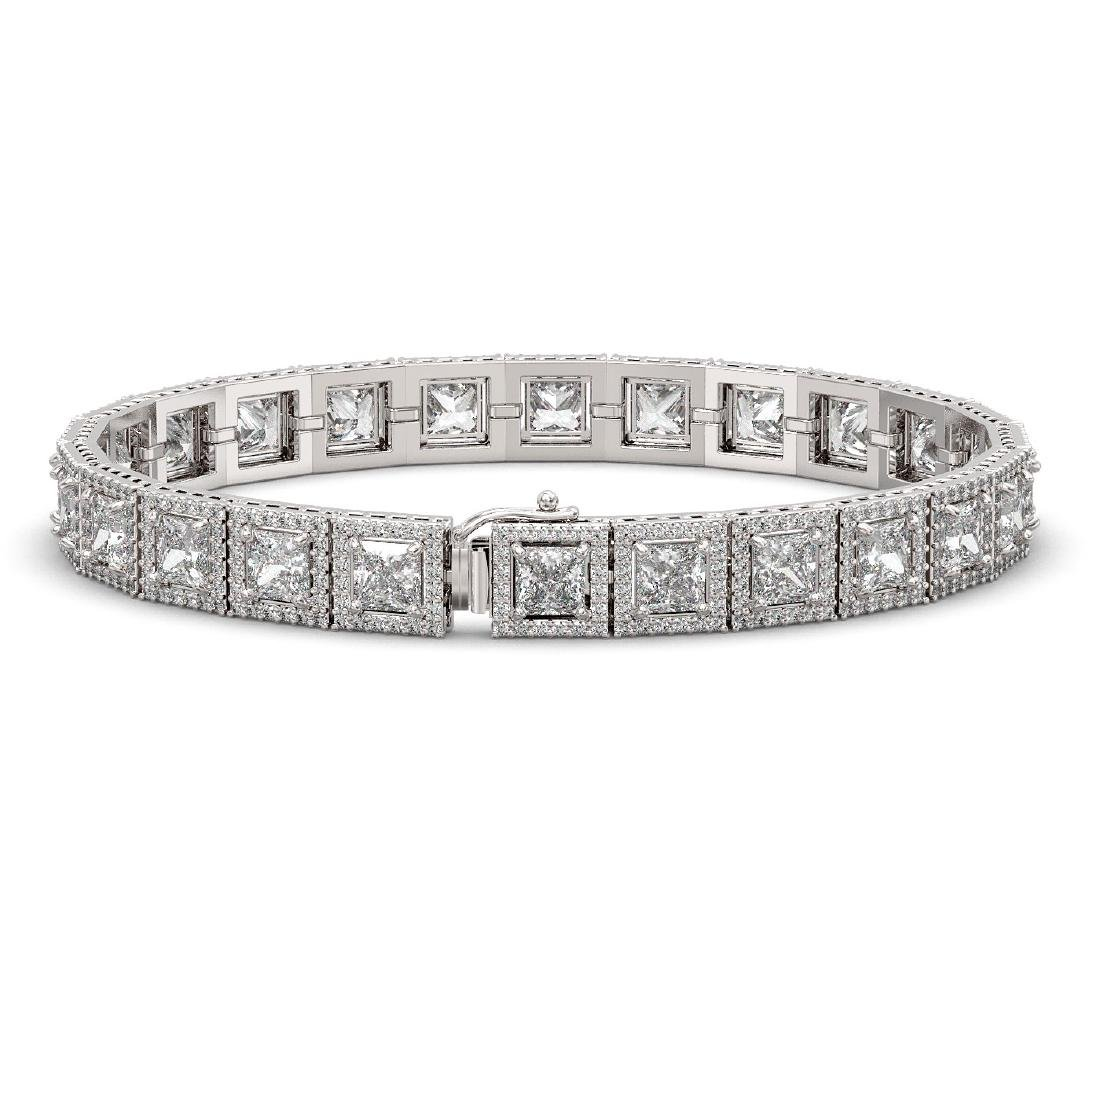 18.24 CTW Princess Diamond Designer Bracelet 18K White - 2